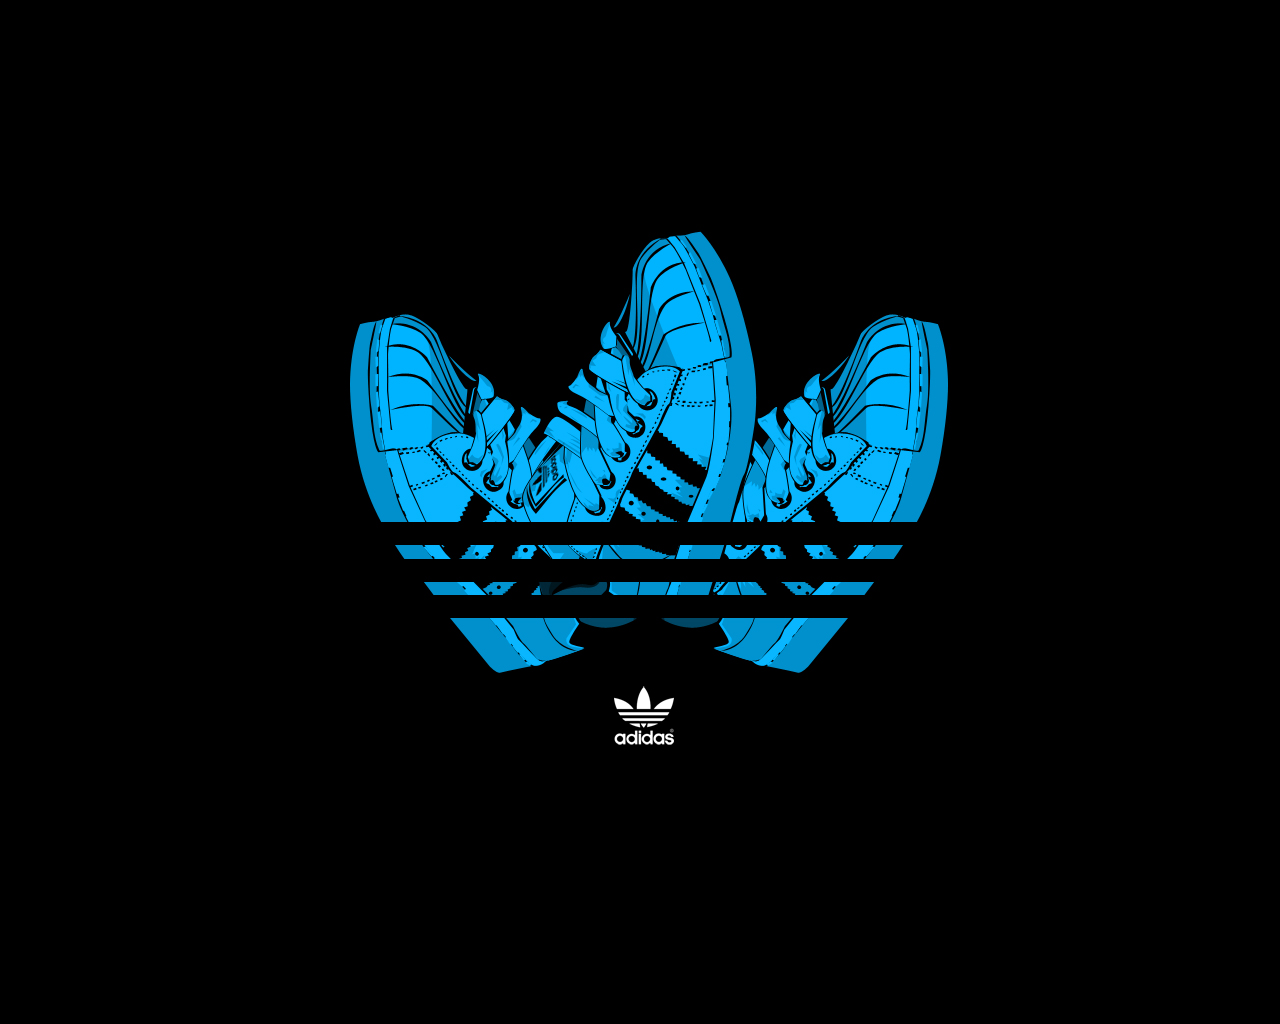 Adidas Logo HD Wallpapers Download Wallpapers in HD for your 1280x1024